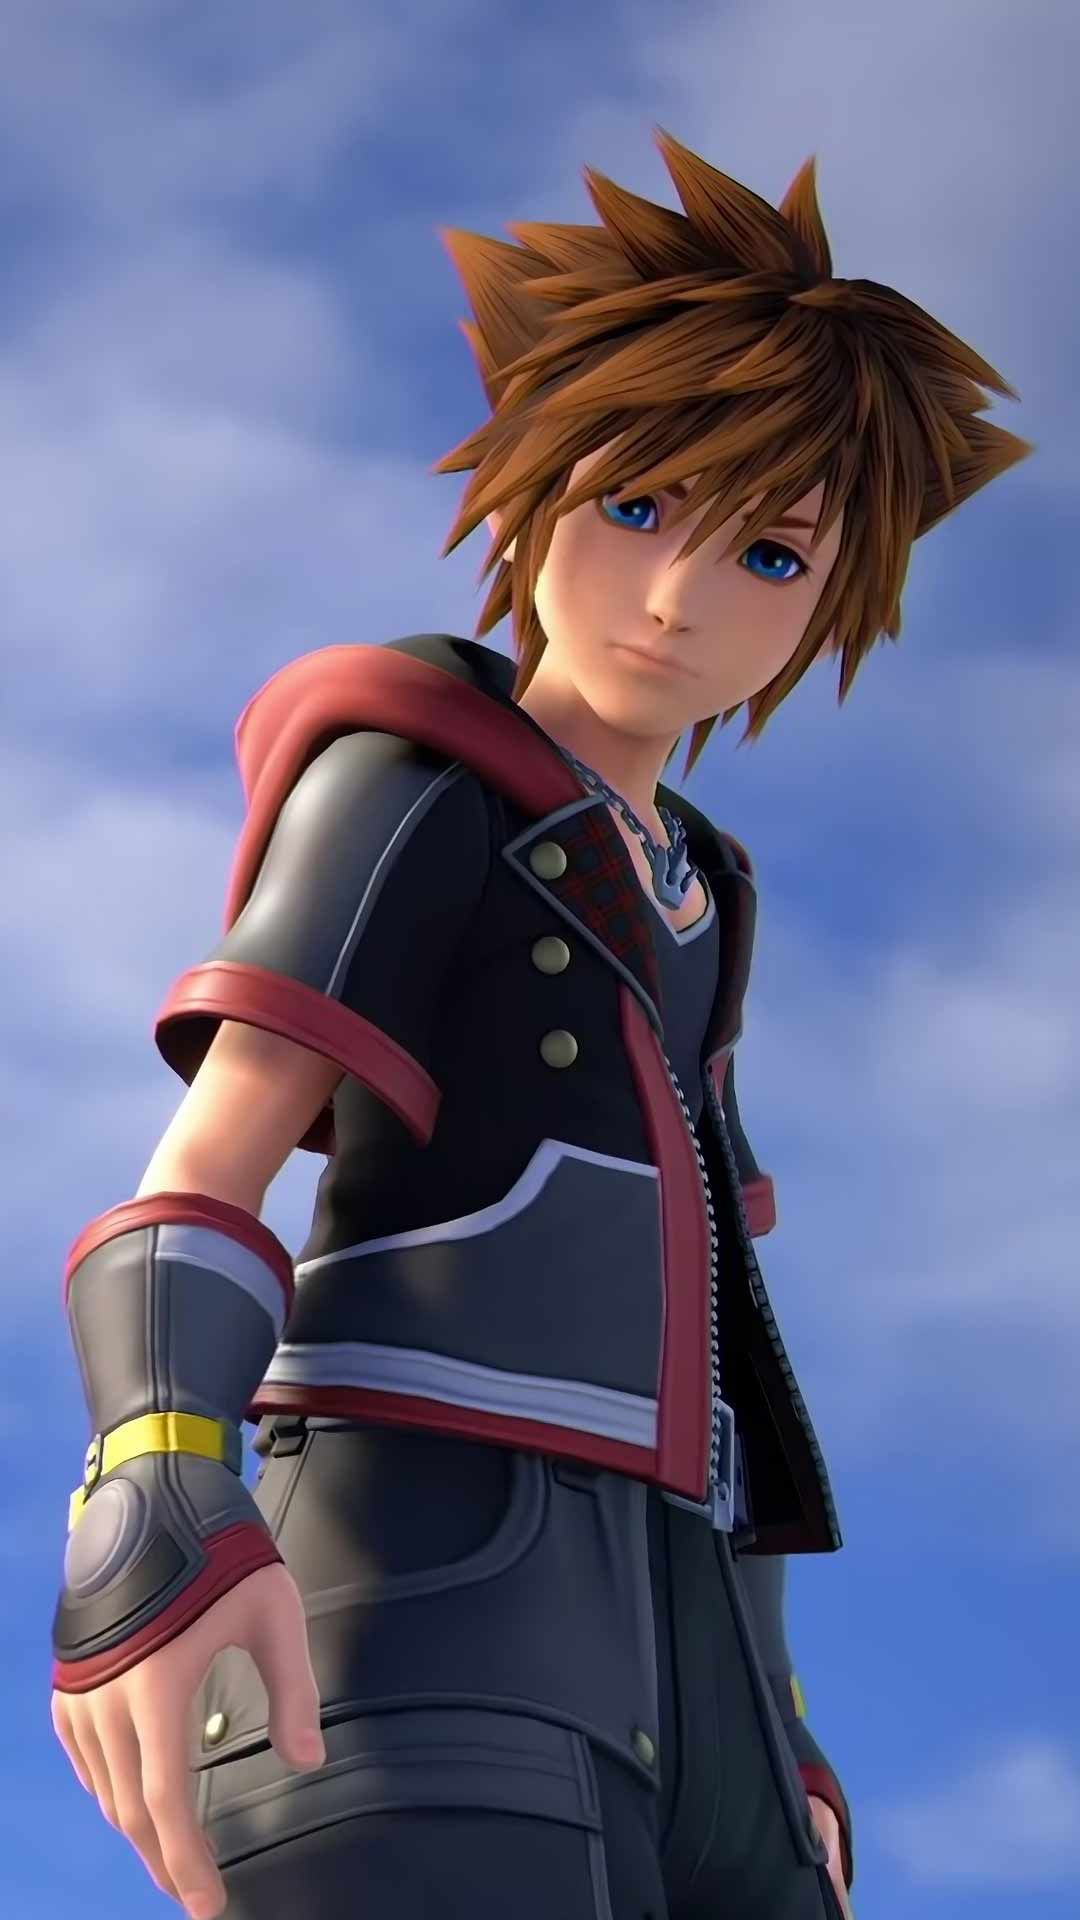 20 Kingdom Hearts 3 Phone Wallpaper Hd Backgrounds Iphone Android Free Characters Art Download Kingdom Hearts Kingdom Hearts 3 Phone Wallpaper Lock screen kingdom hearts 3 iphone